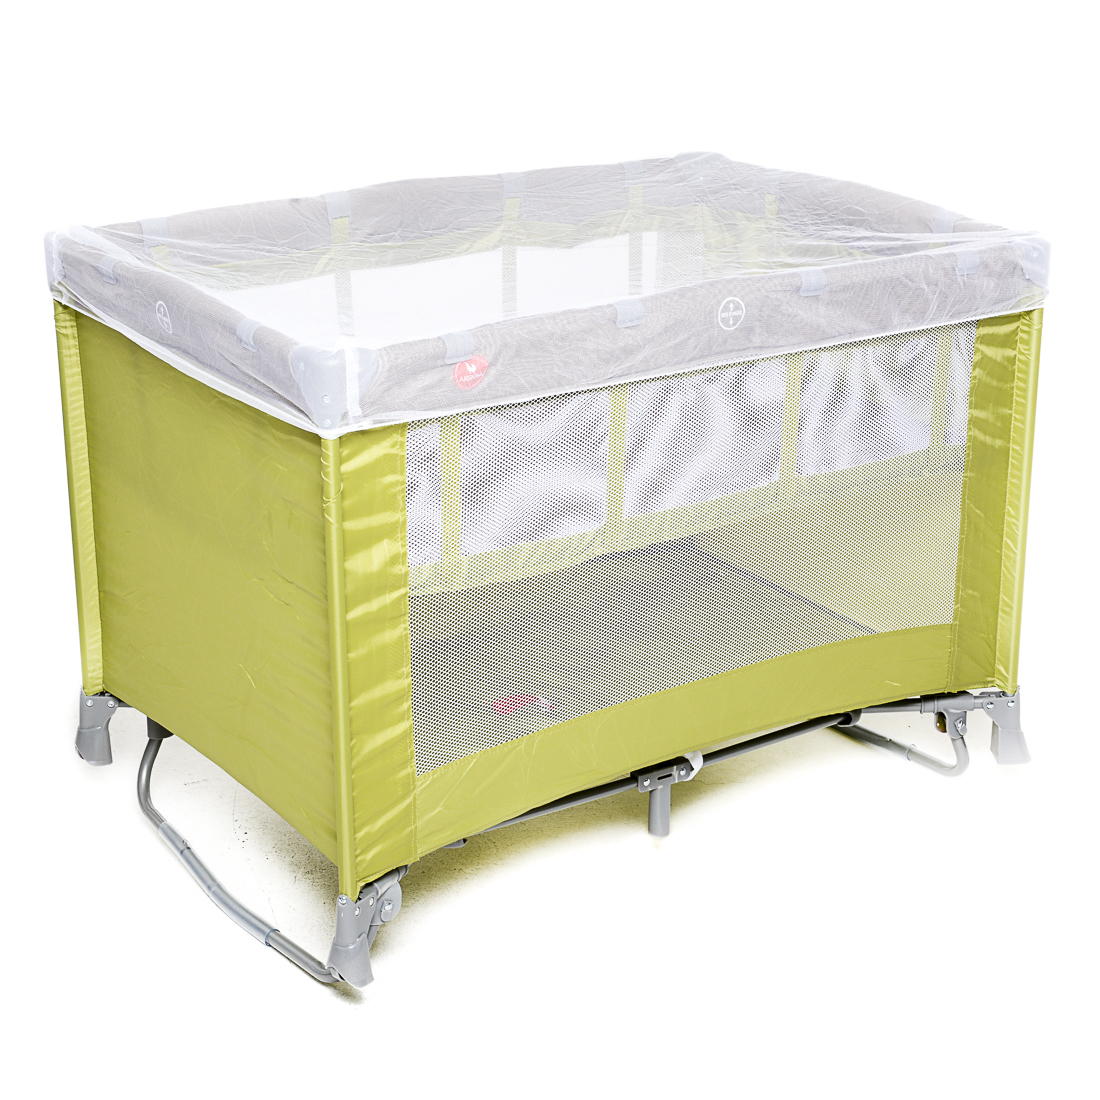 Crib for sale sulit com - Baby Crib For Sale Sulit Baby Crib For Sale Sulit 45